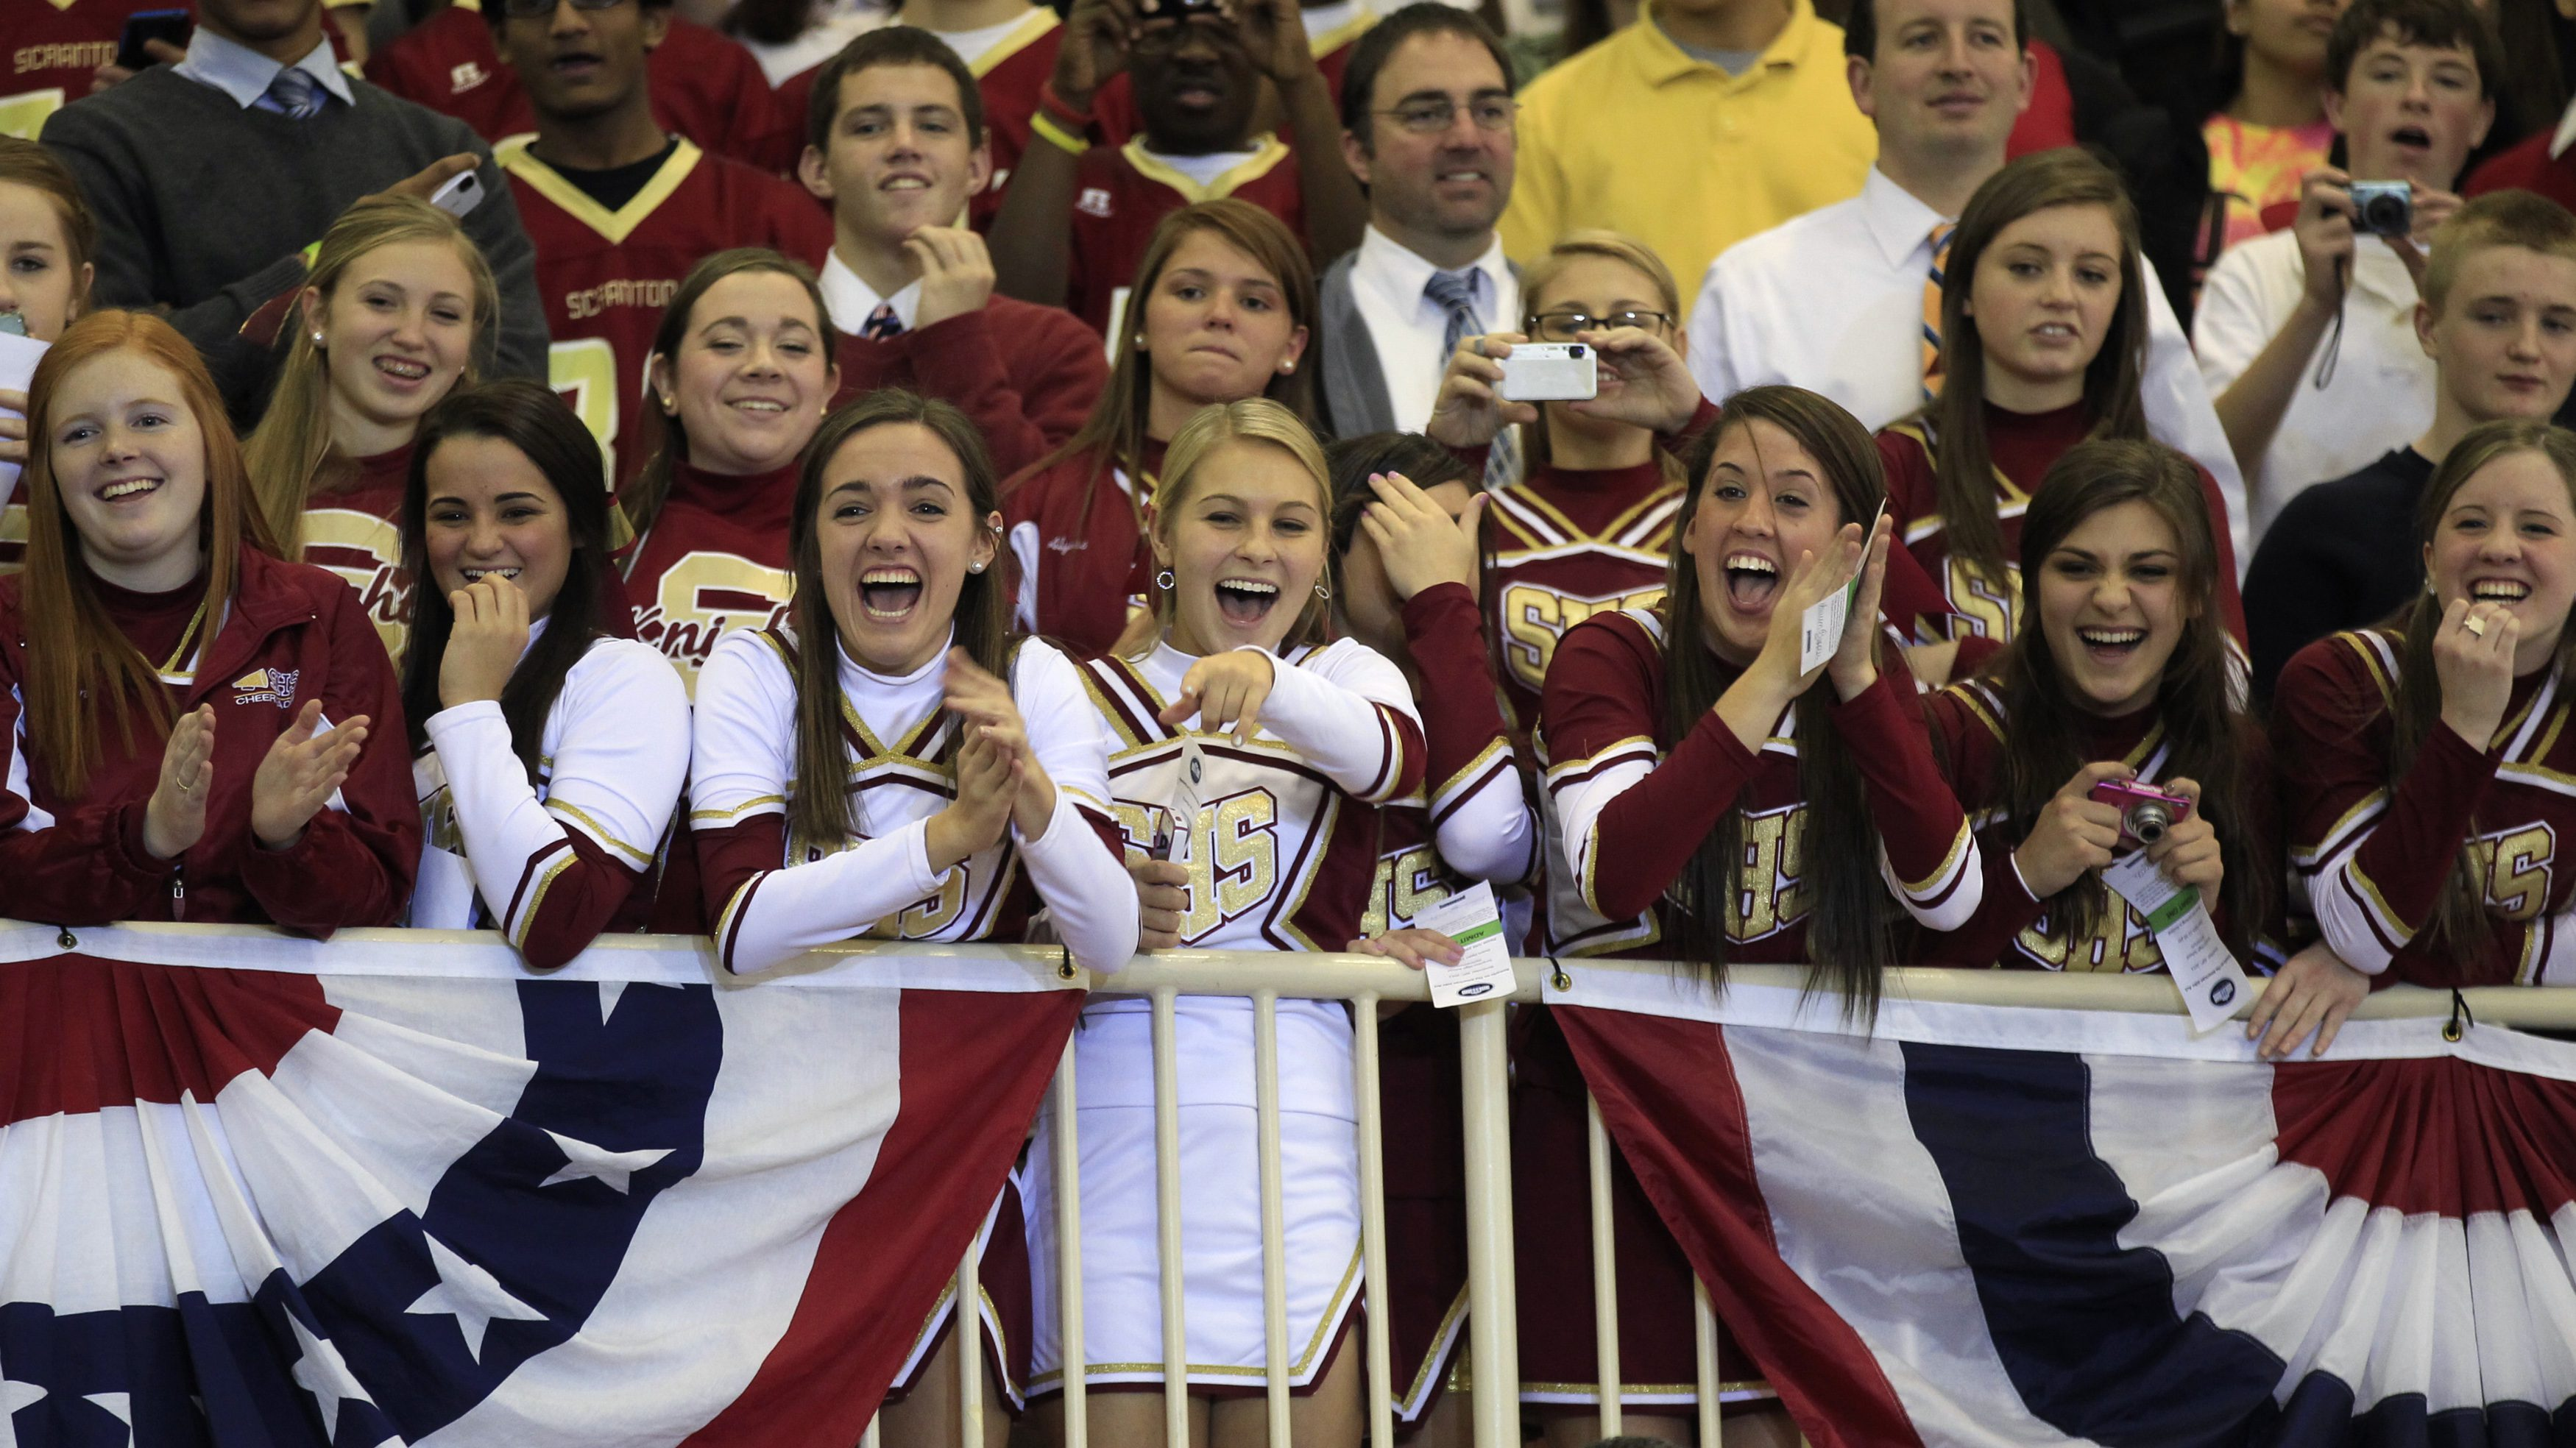 Cheerleaders at Scranton High School react as U.S. President Barack Obama shakes hands with people after talking about extending and expanding the payroll tax cut during his visit to Scranton, Pennsylvania November 30, 2011.